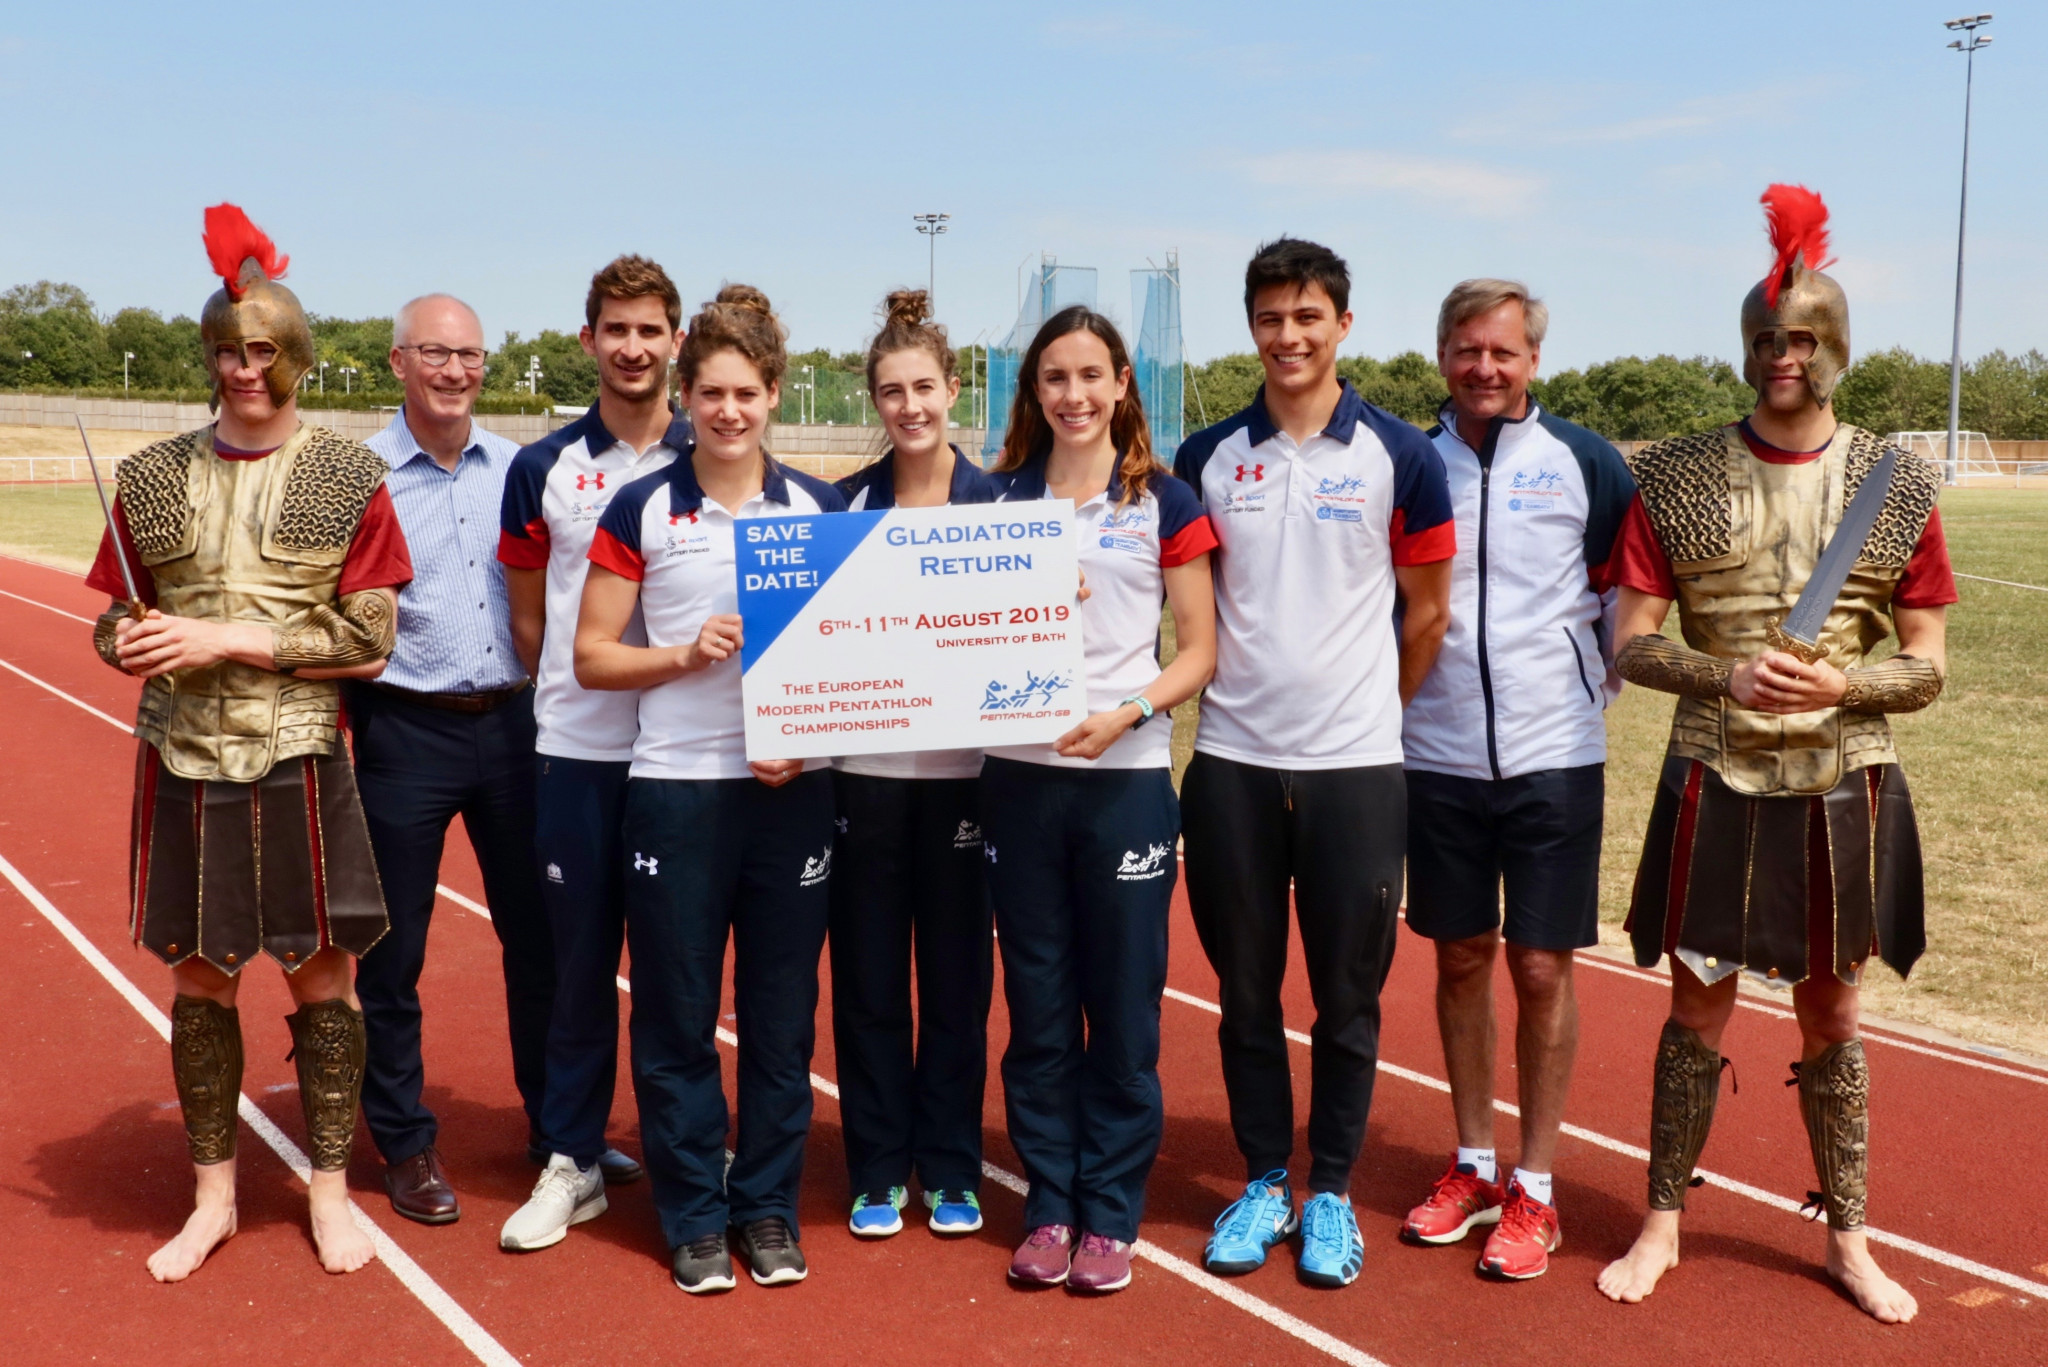 Pentathlon GB launch preparations for 2019 European Championships